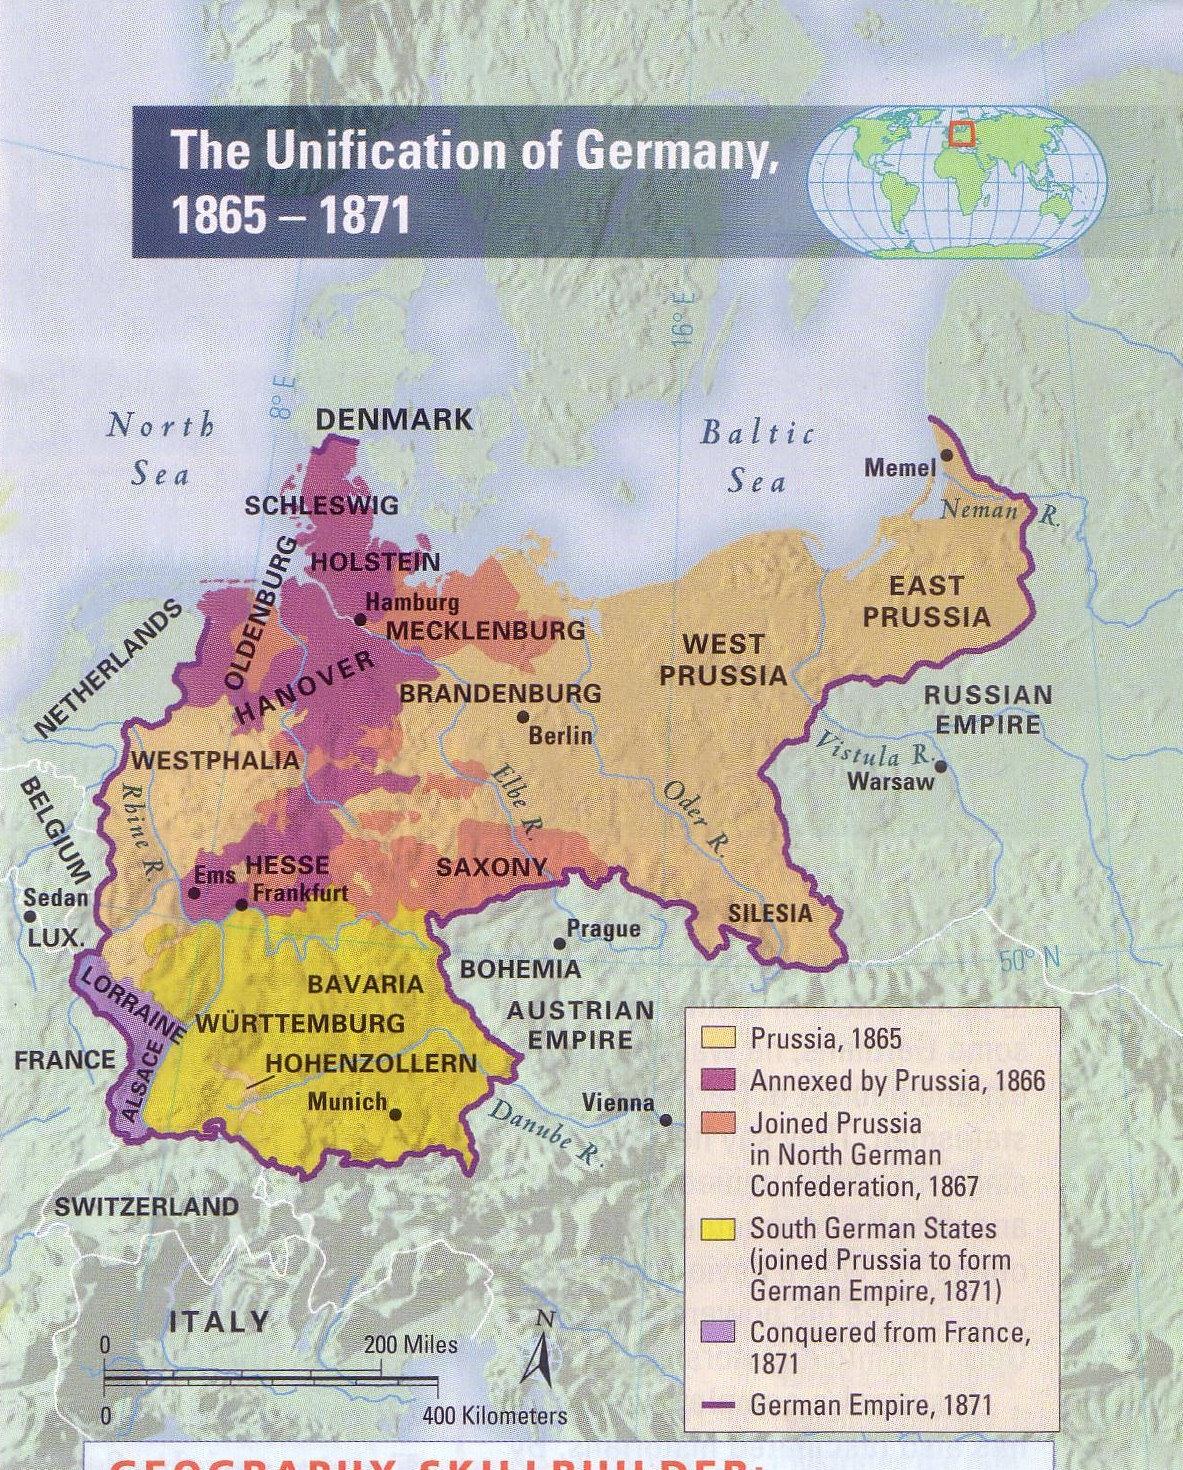 The unification of Germany 1865-1871